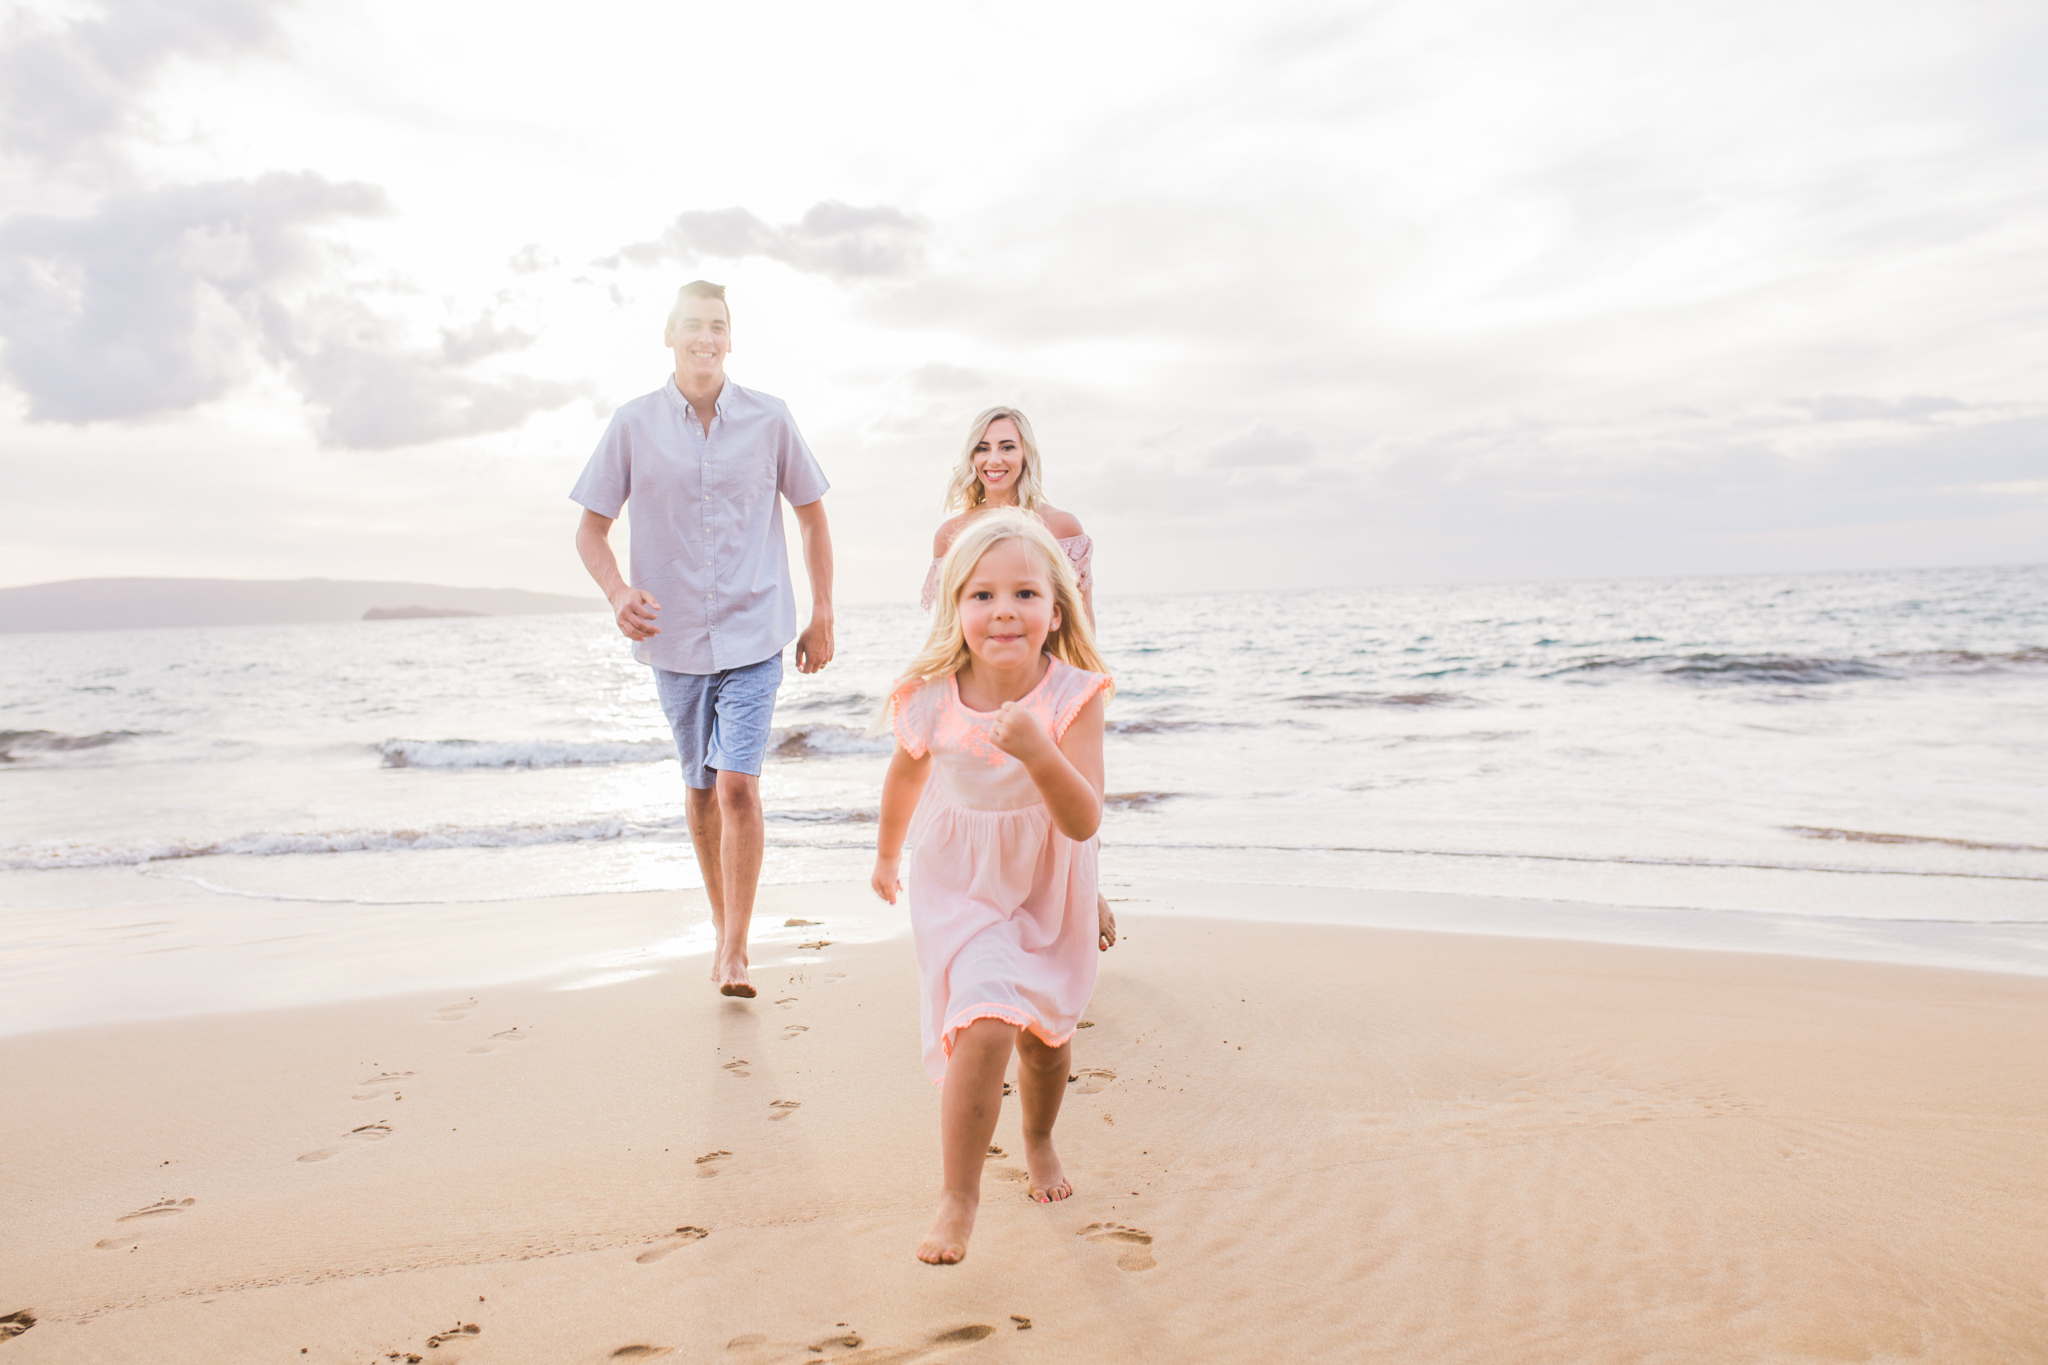 This family session in Maui, Hawaii